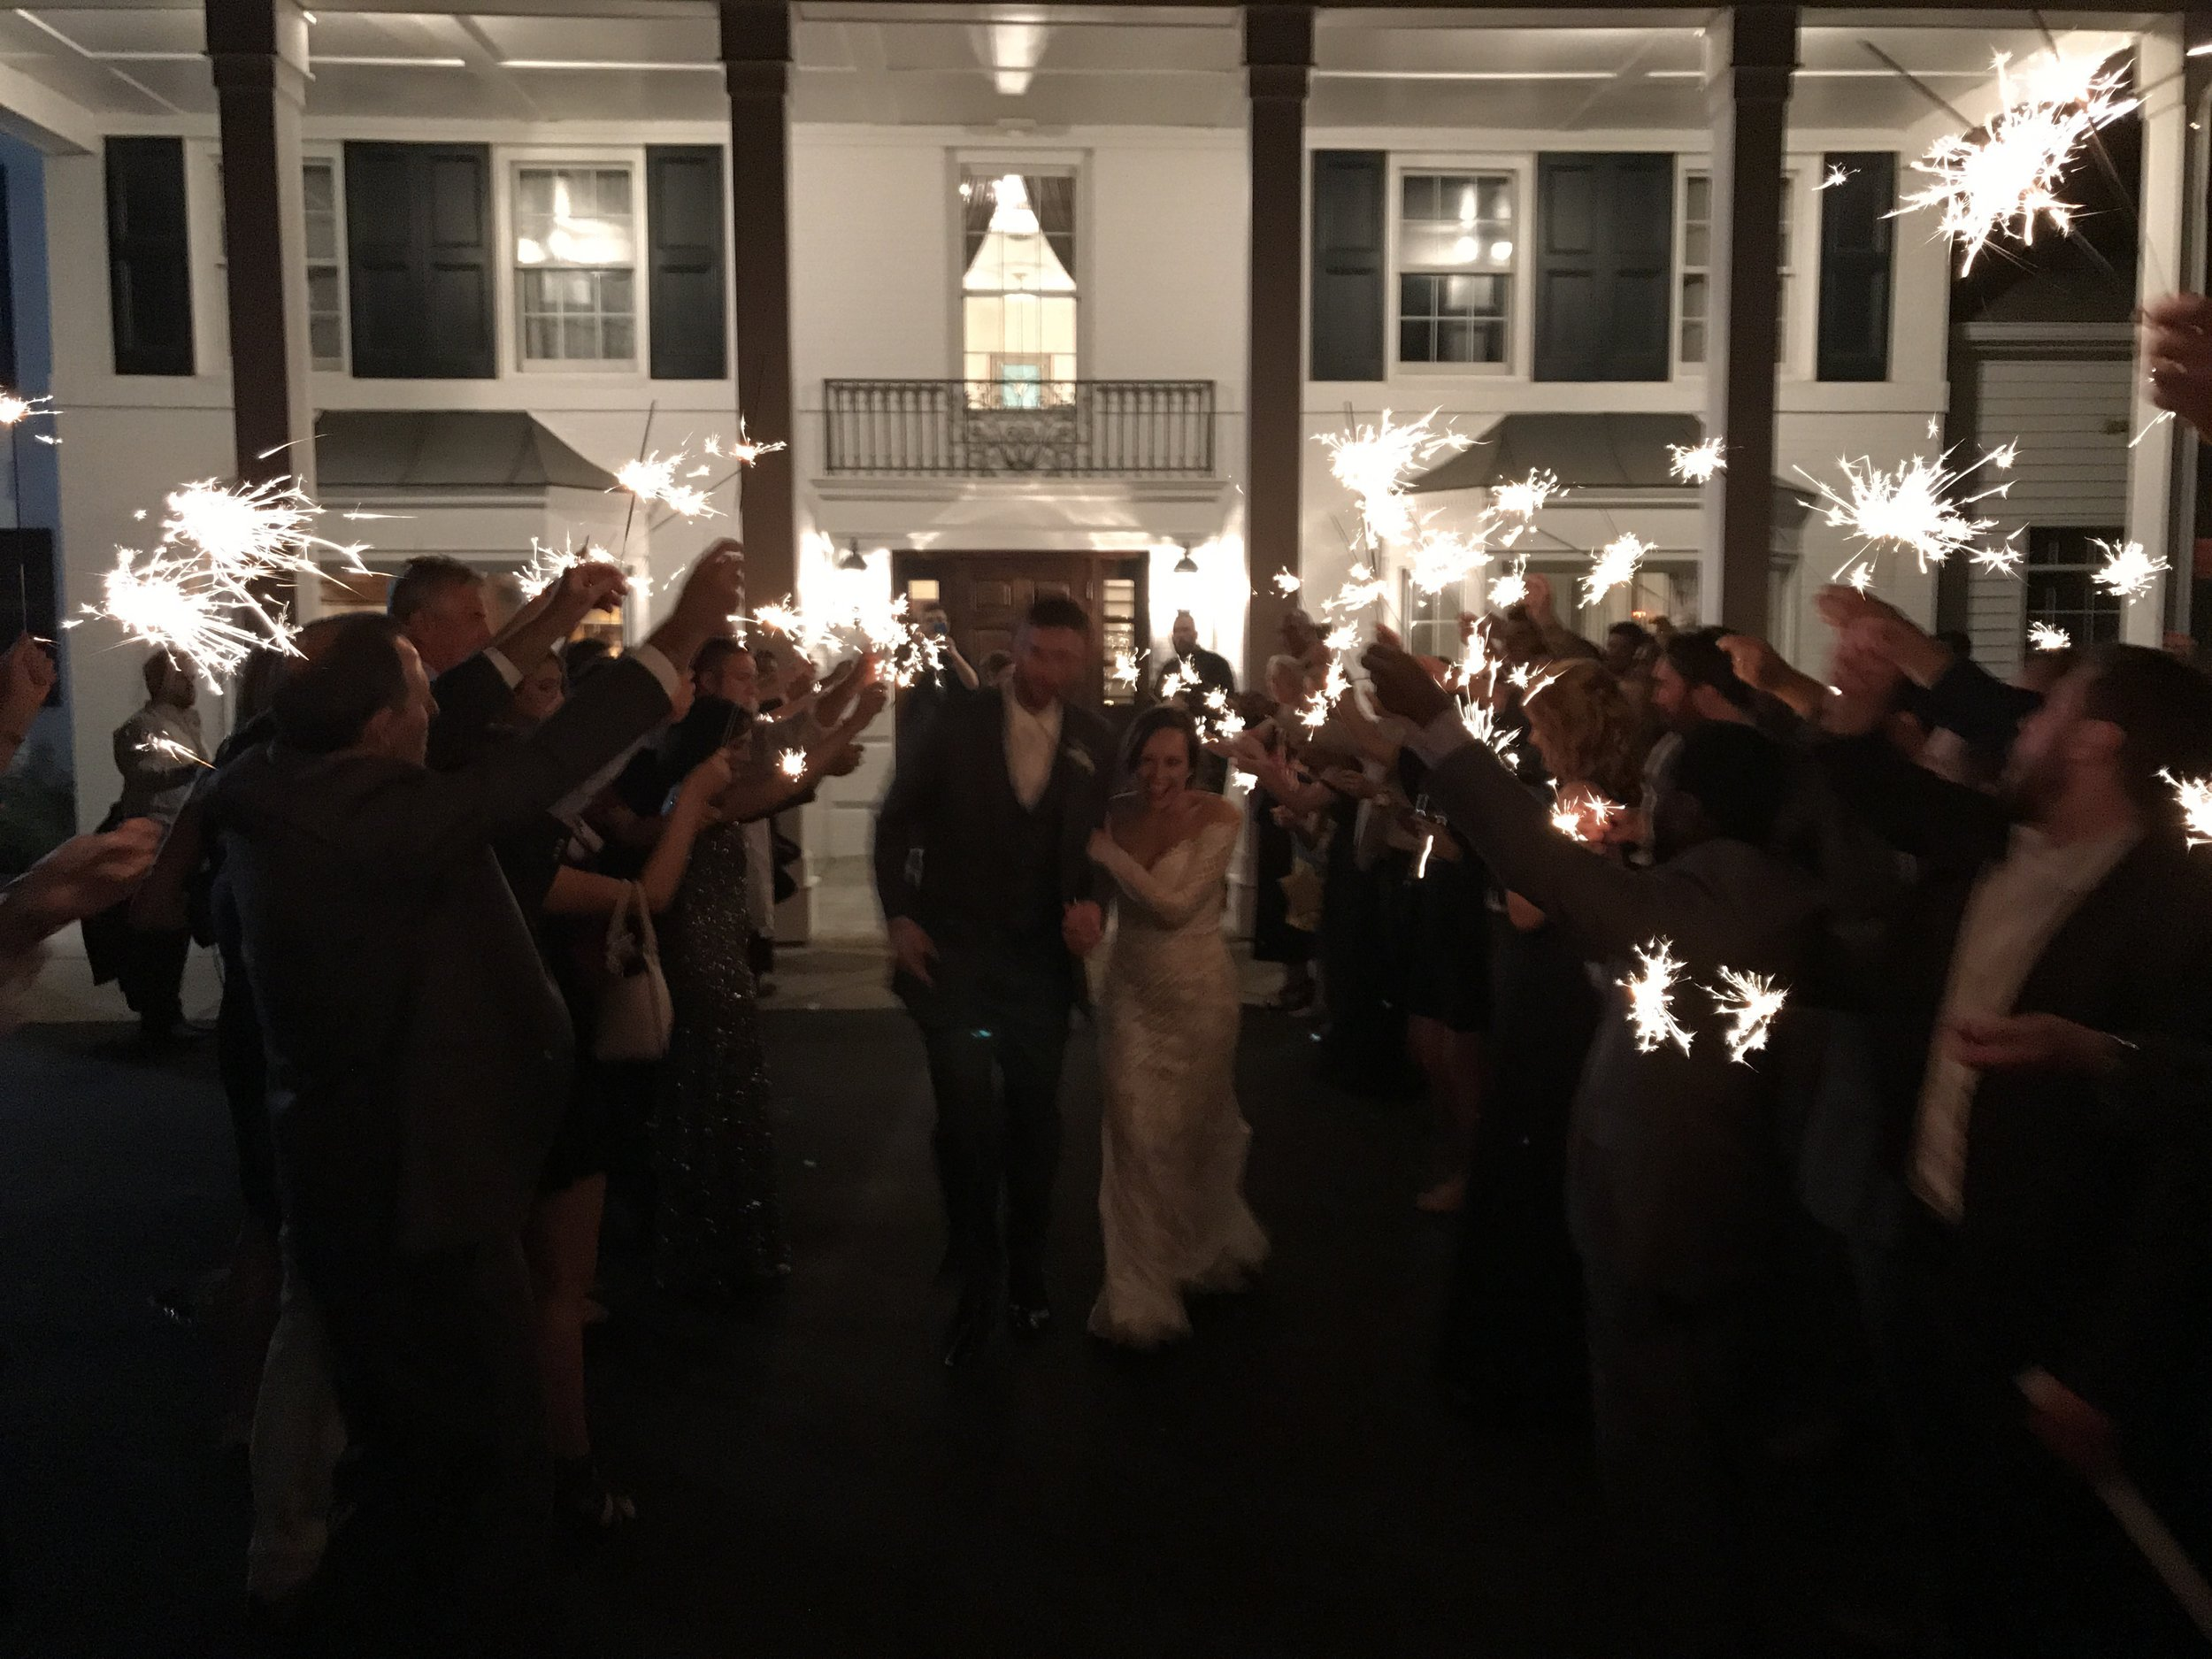 From beginning to end, Erin & Mark's day sparkled with love, energy and FUN!